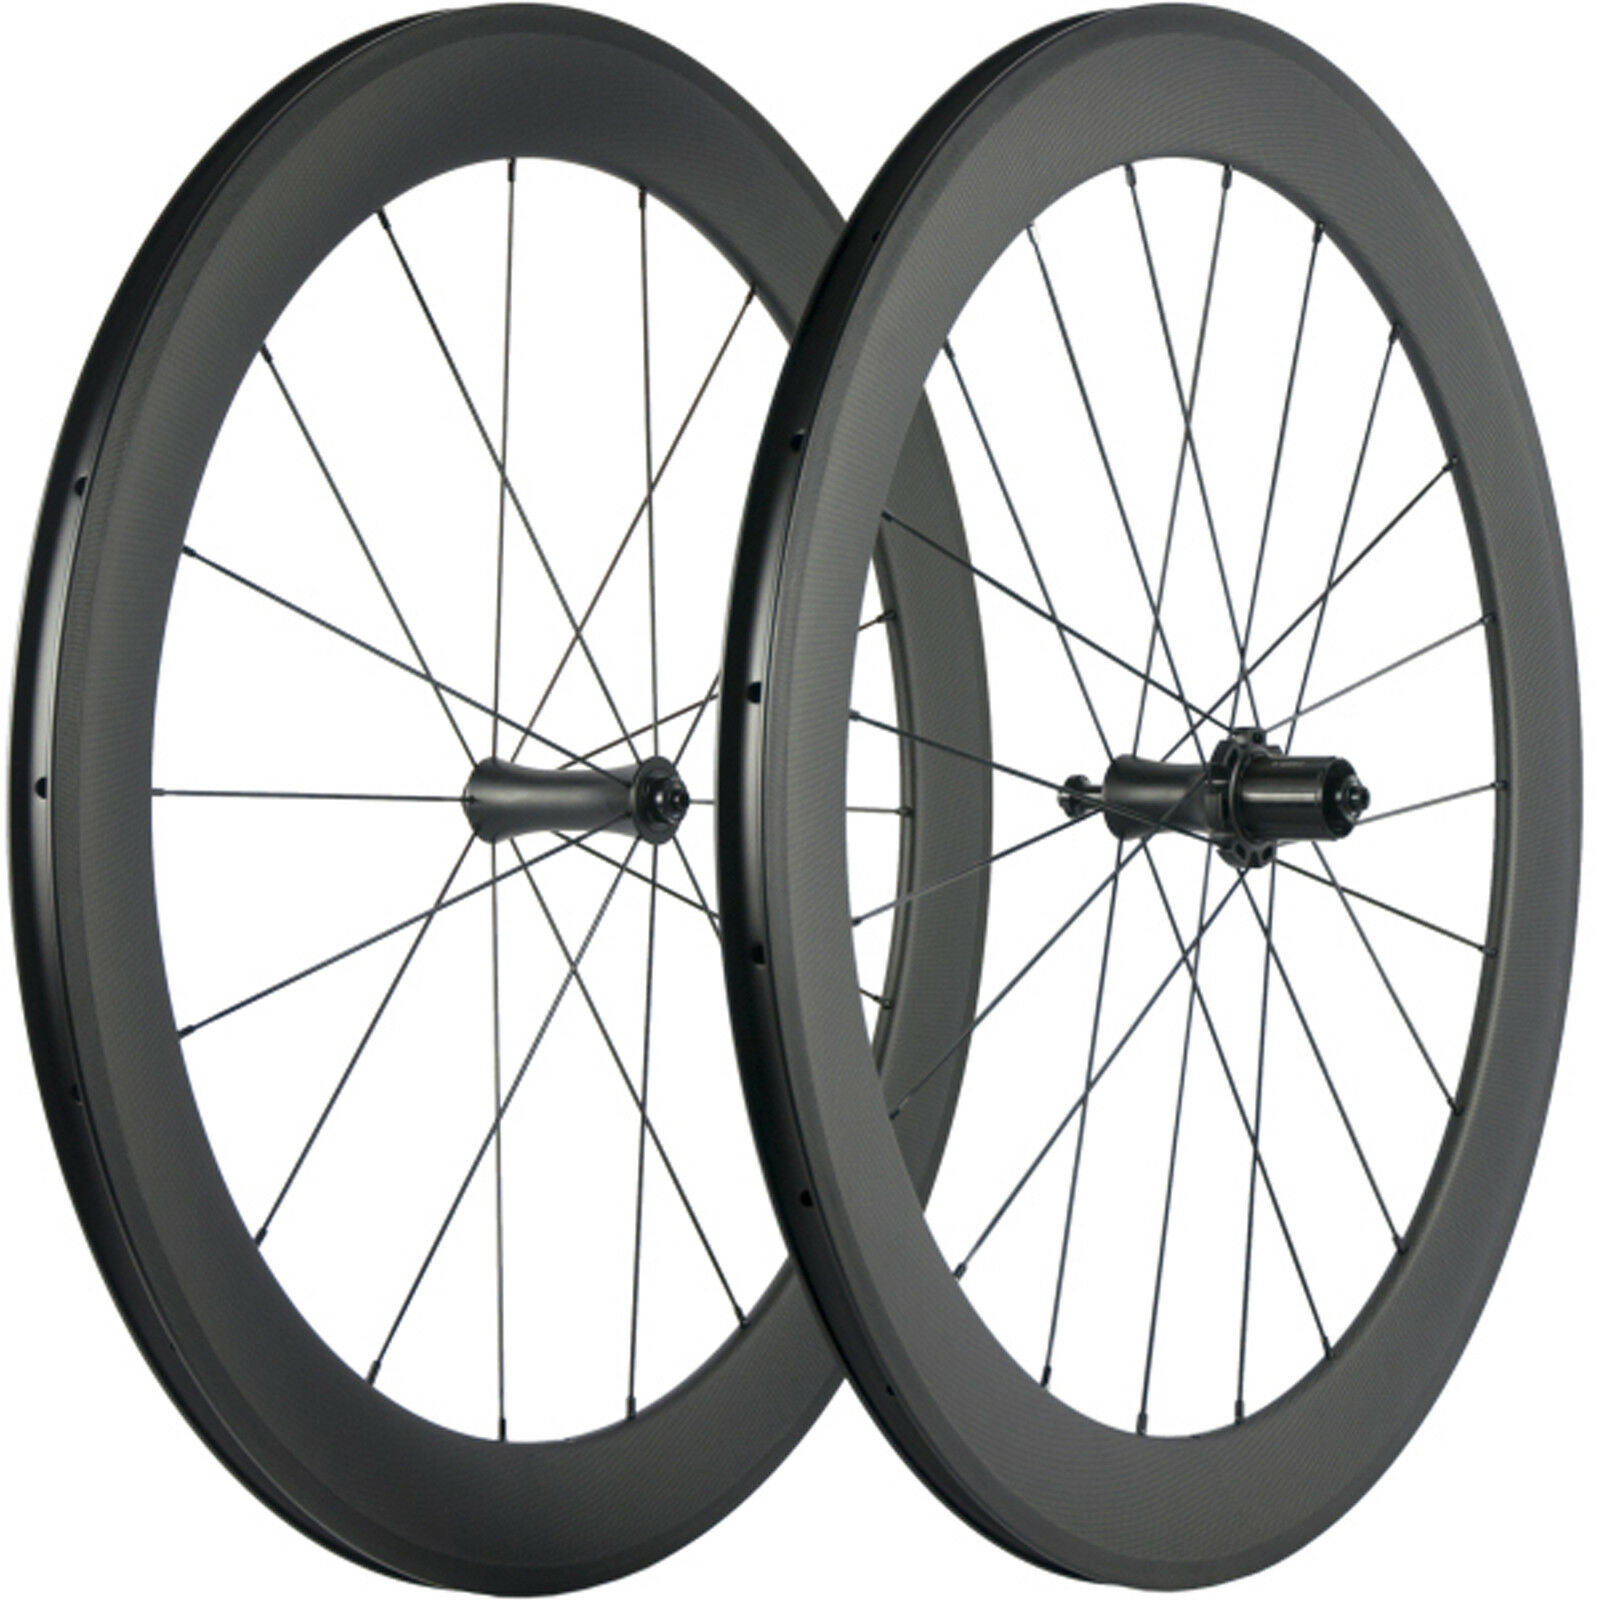 Carbon Wheelset 700C Road  Bike Wheels 60mm Clincher Bicycle Wheelset R7 Hub  great offers